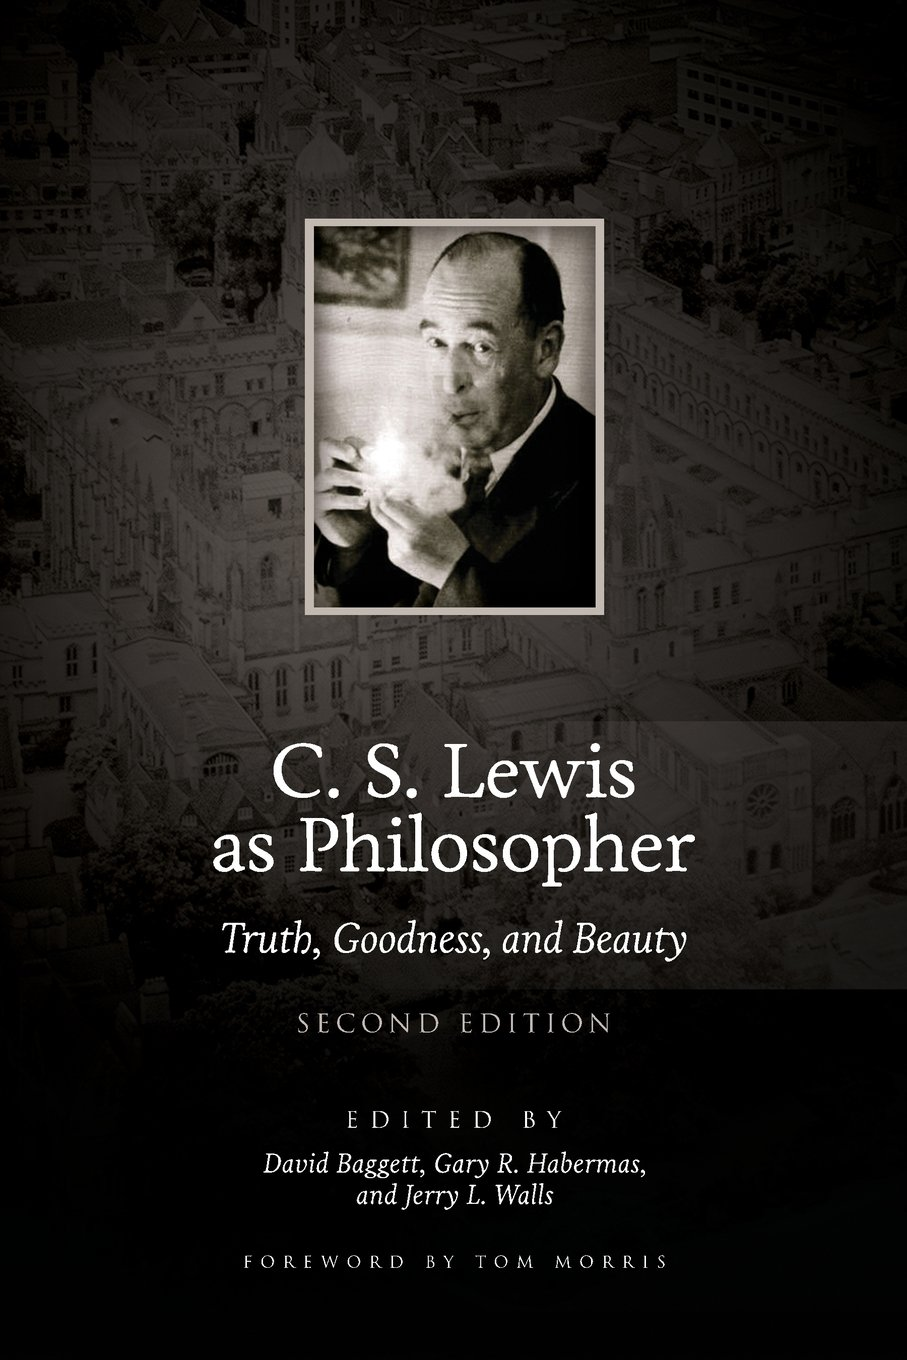 Download C. S. Lewis as Philosopher: Truth, Goodness, and Beauty (2nd Edition) ebook